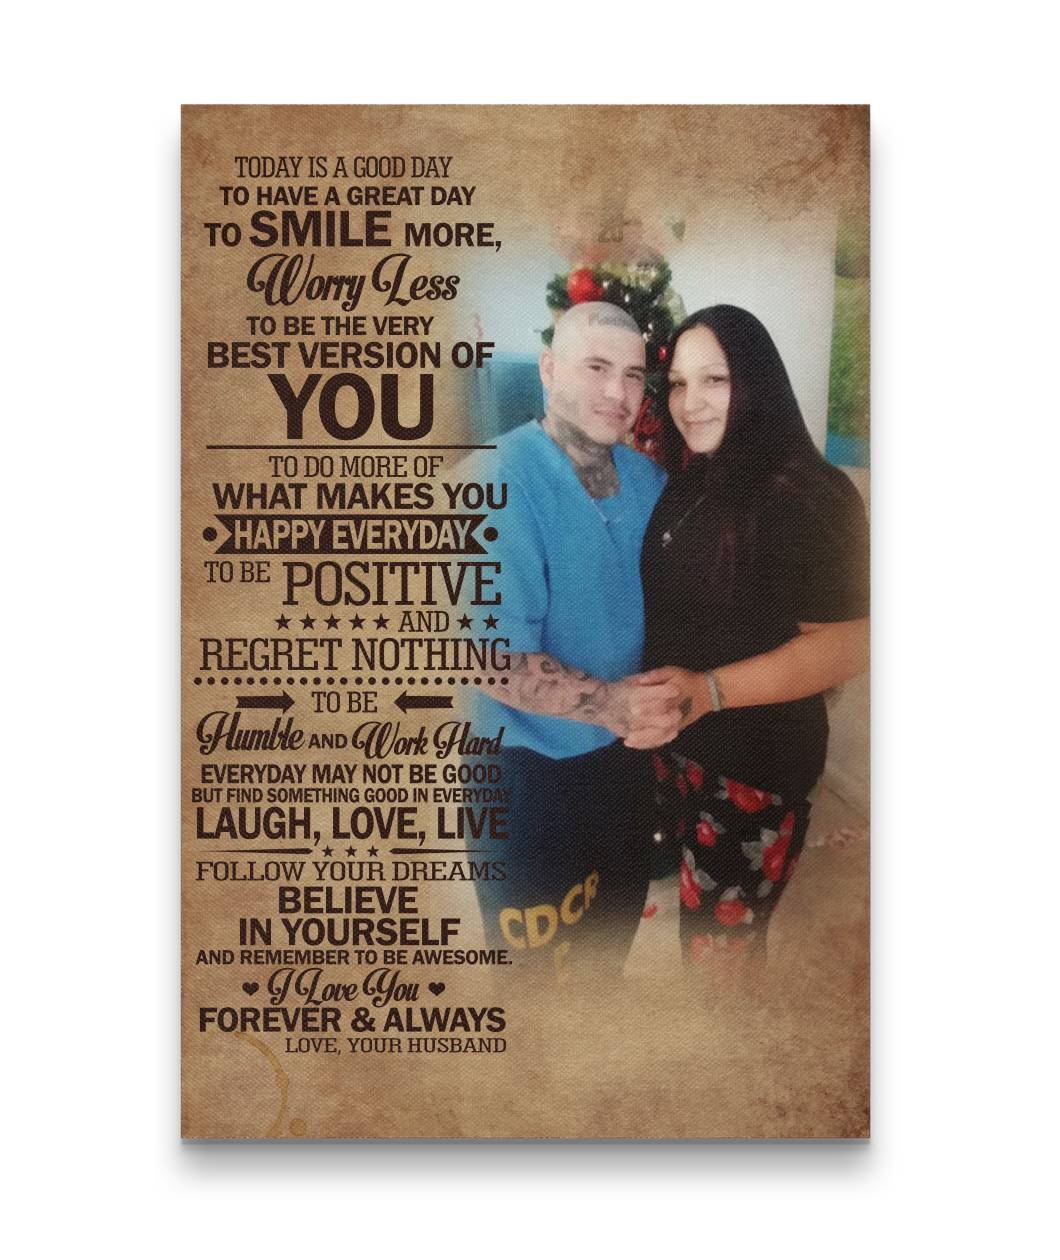 Today Is A Good Day Sweet Couple Hugging Canvas Print Gift For Crush